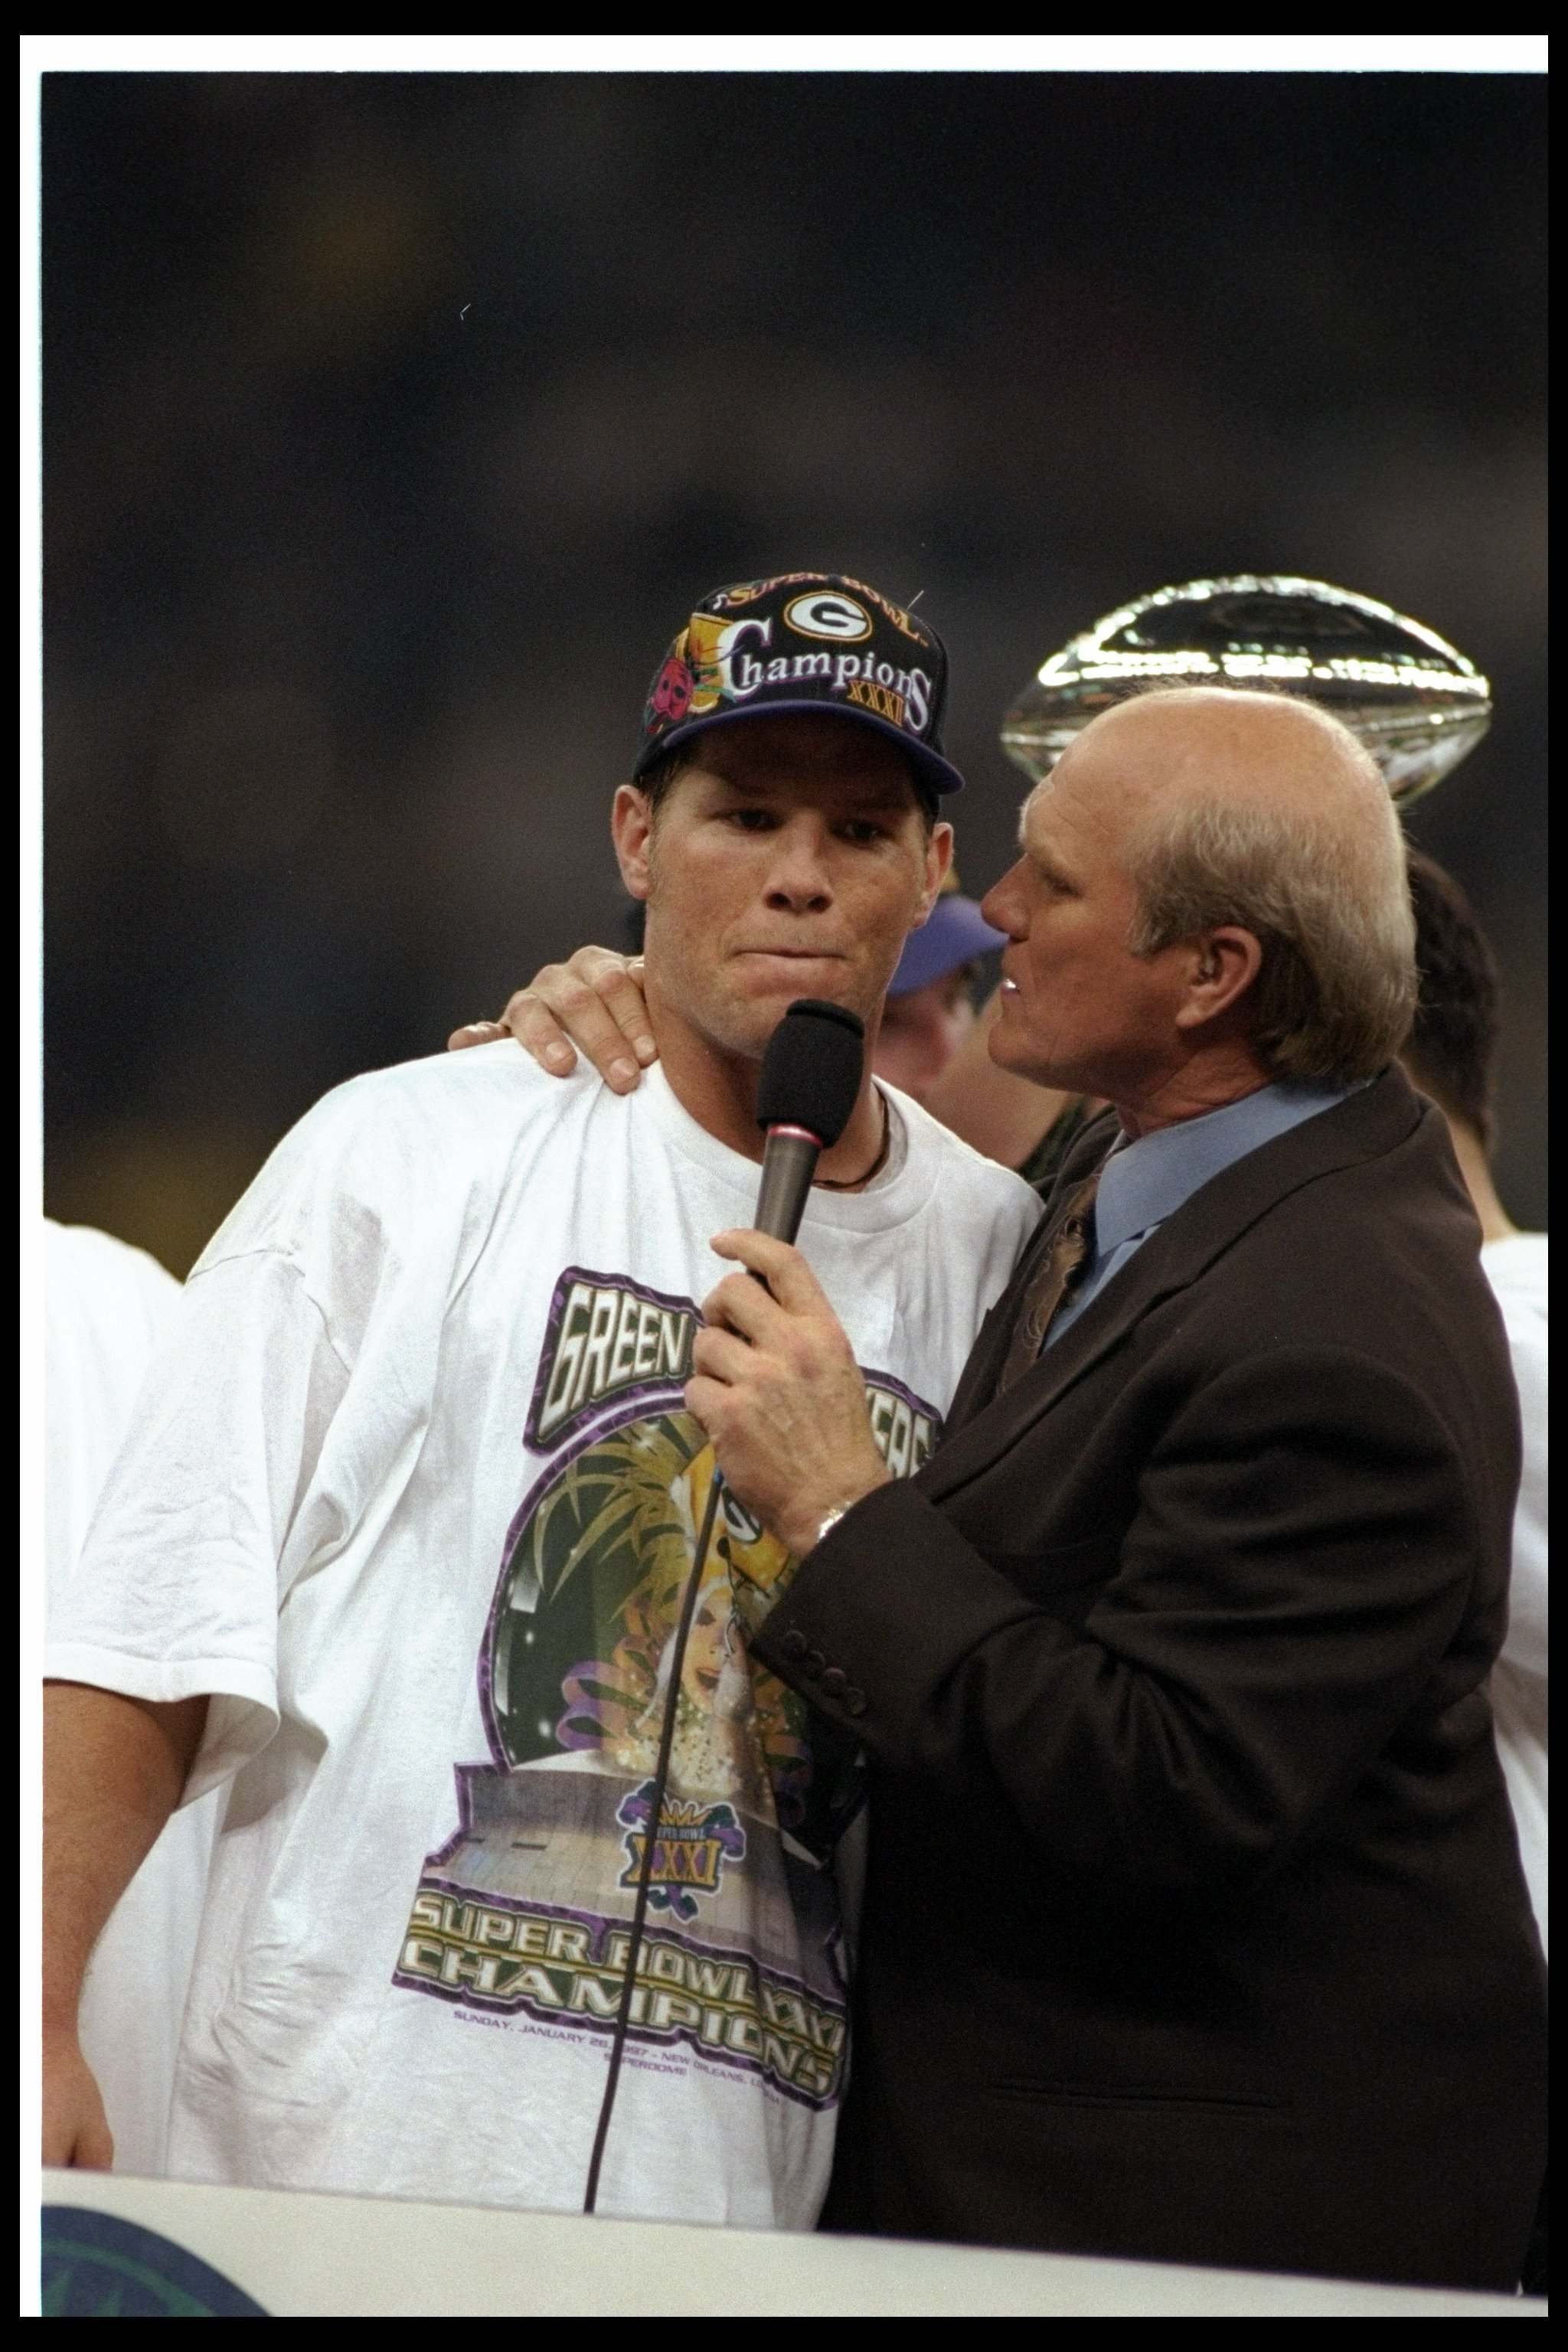 26 Jan 1997:  Quarterback Brett Favre of the Green Bay Packers gets interviewed by FOX Sports commentator and Hall of Fame quarterback Terry Bradshaw after Super Bowl XXXI against the New England Patriots at the Superdome in New Orleans, Louisiana.  The P